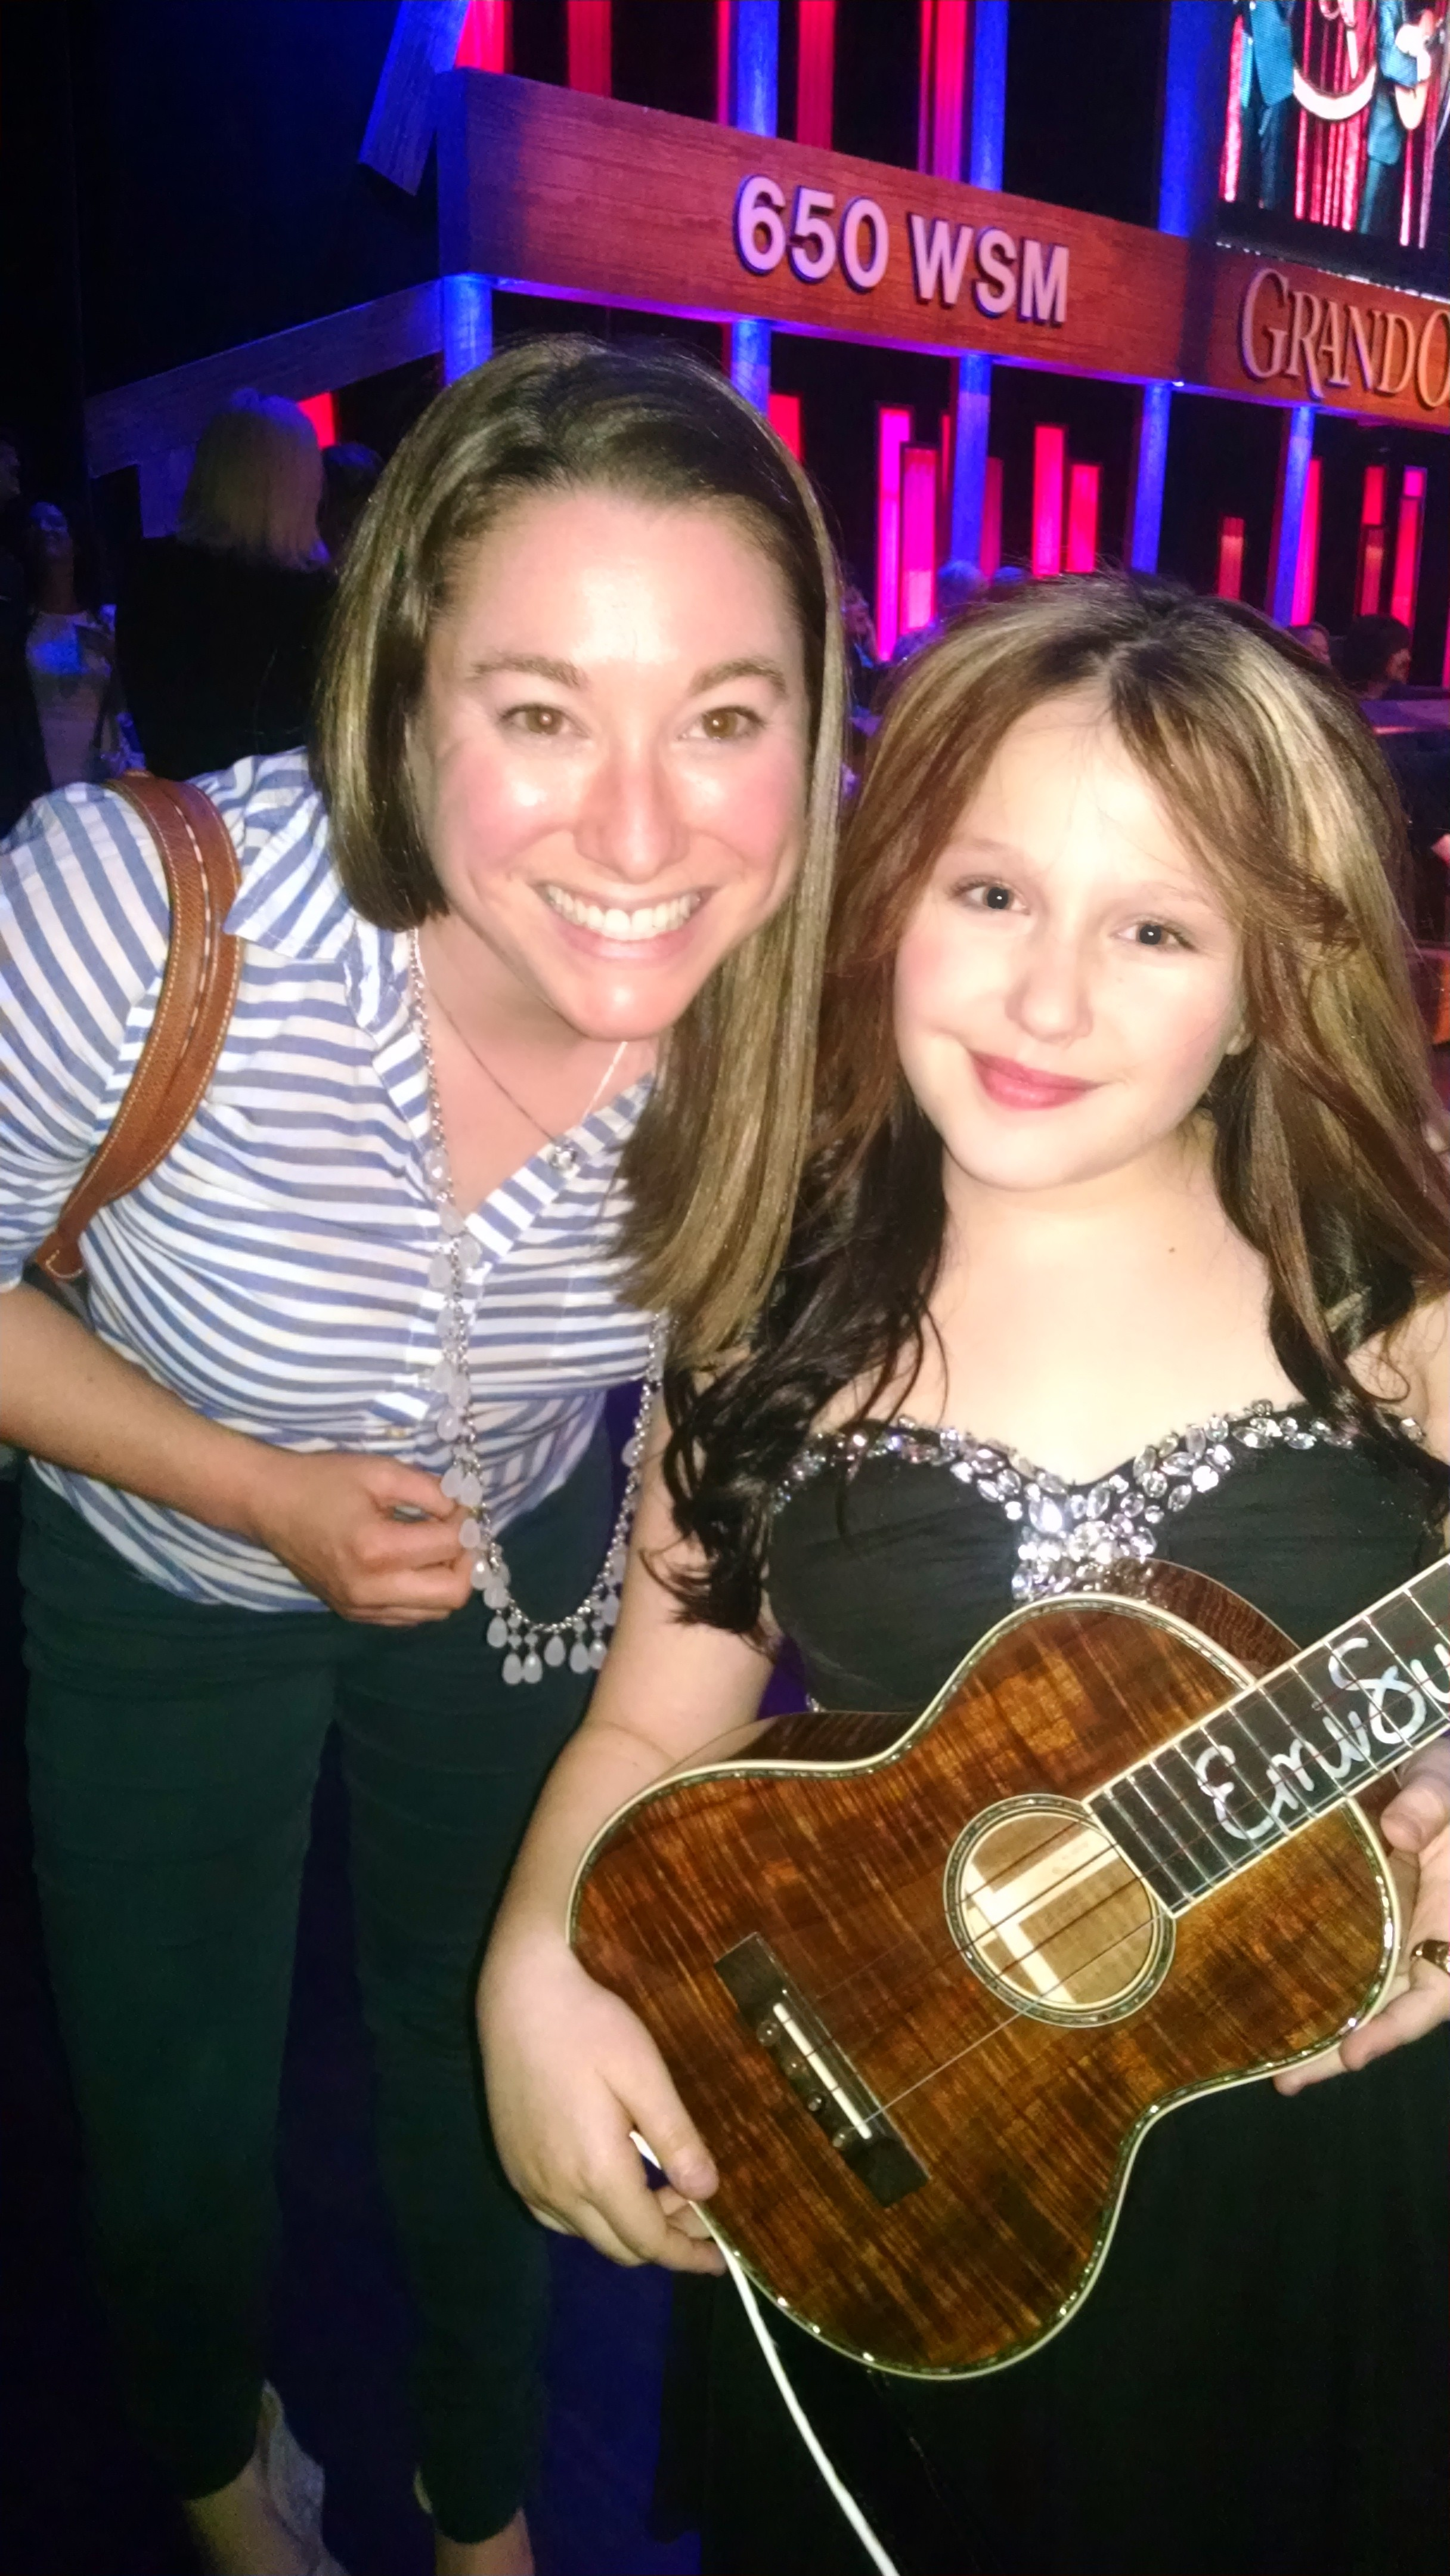 Backstage with EmiSunshine before she plays her EJ Henderson #30 on the Grand Ole Opry!